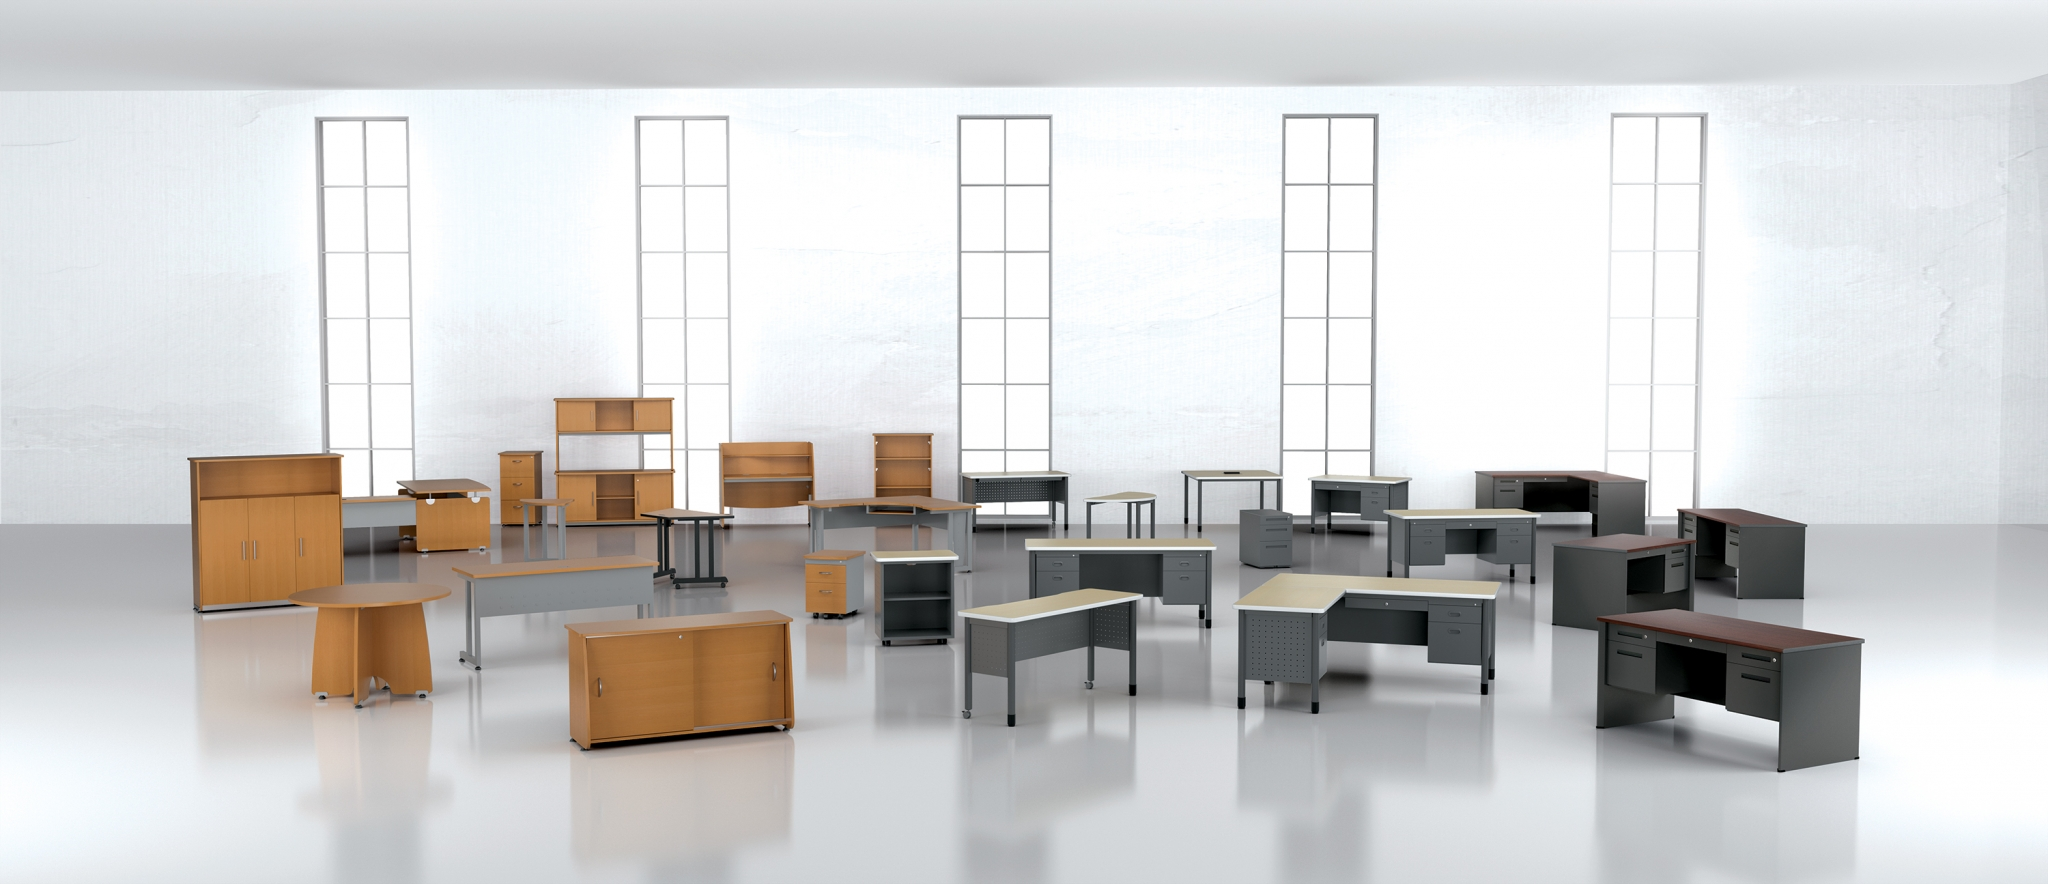 Rental office furniture